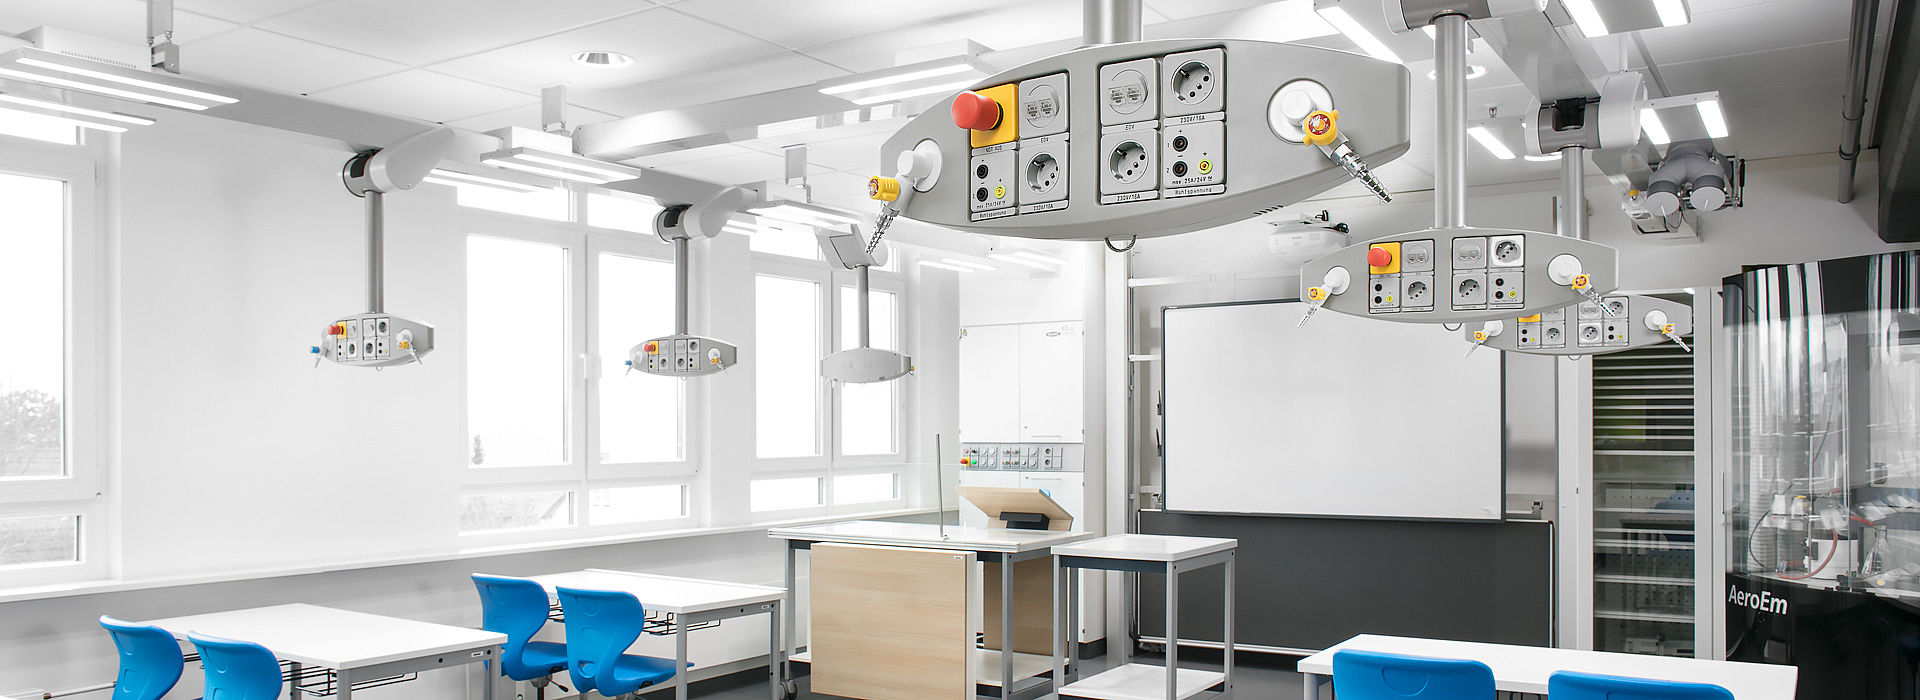 Image: Classroom with Medienlift